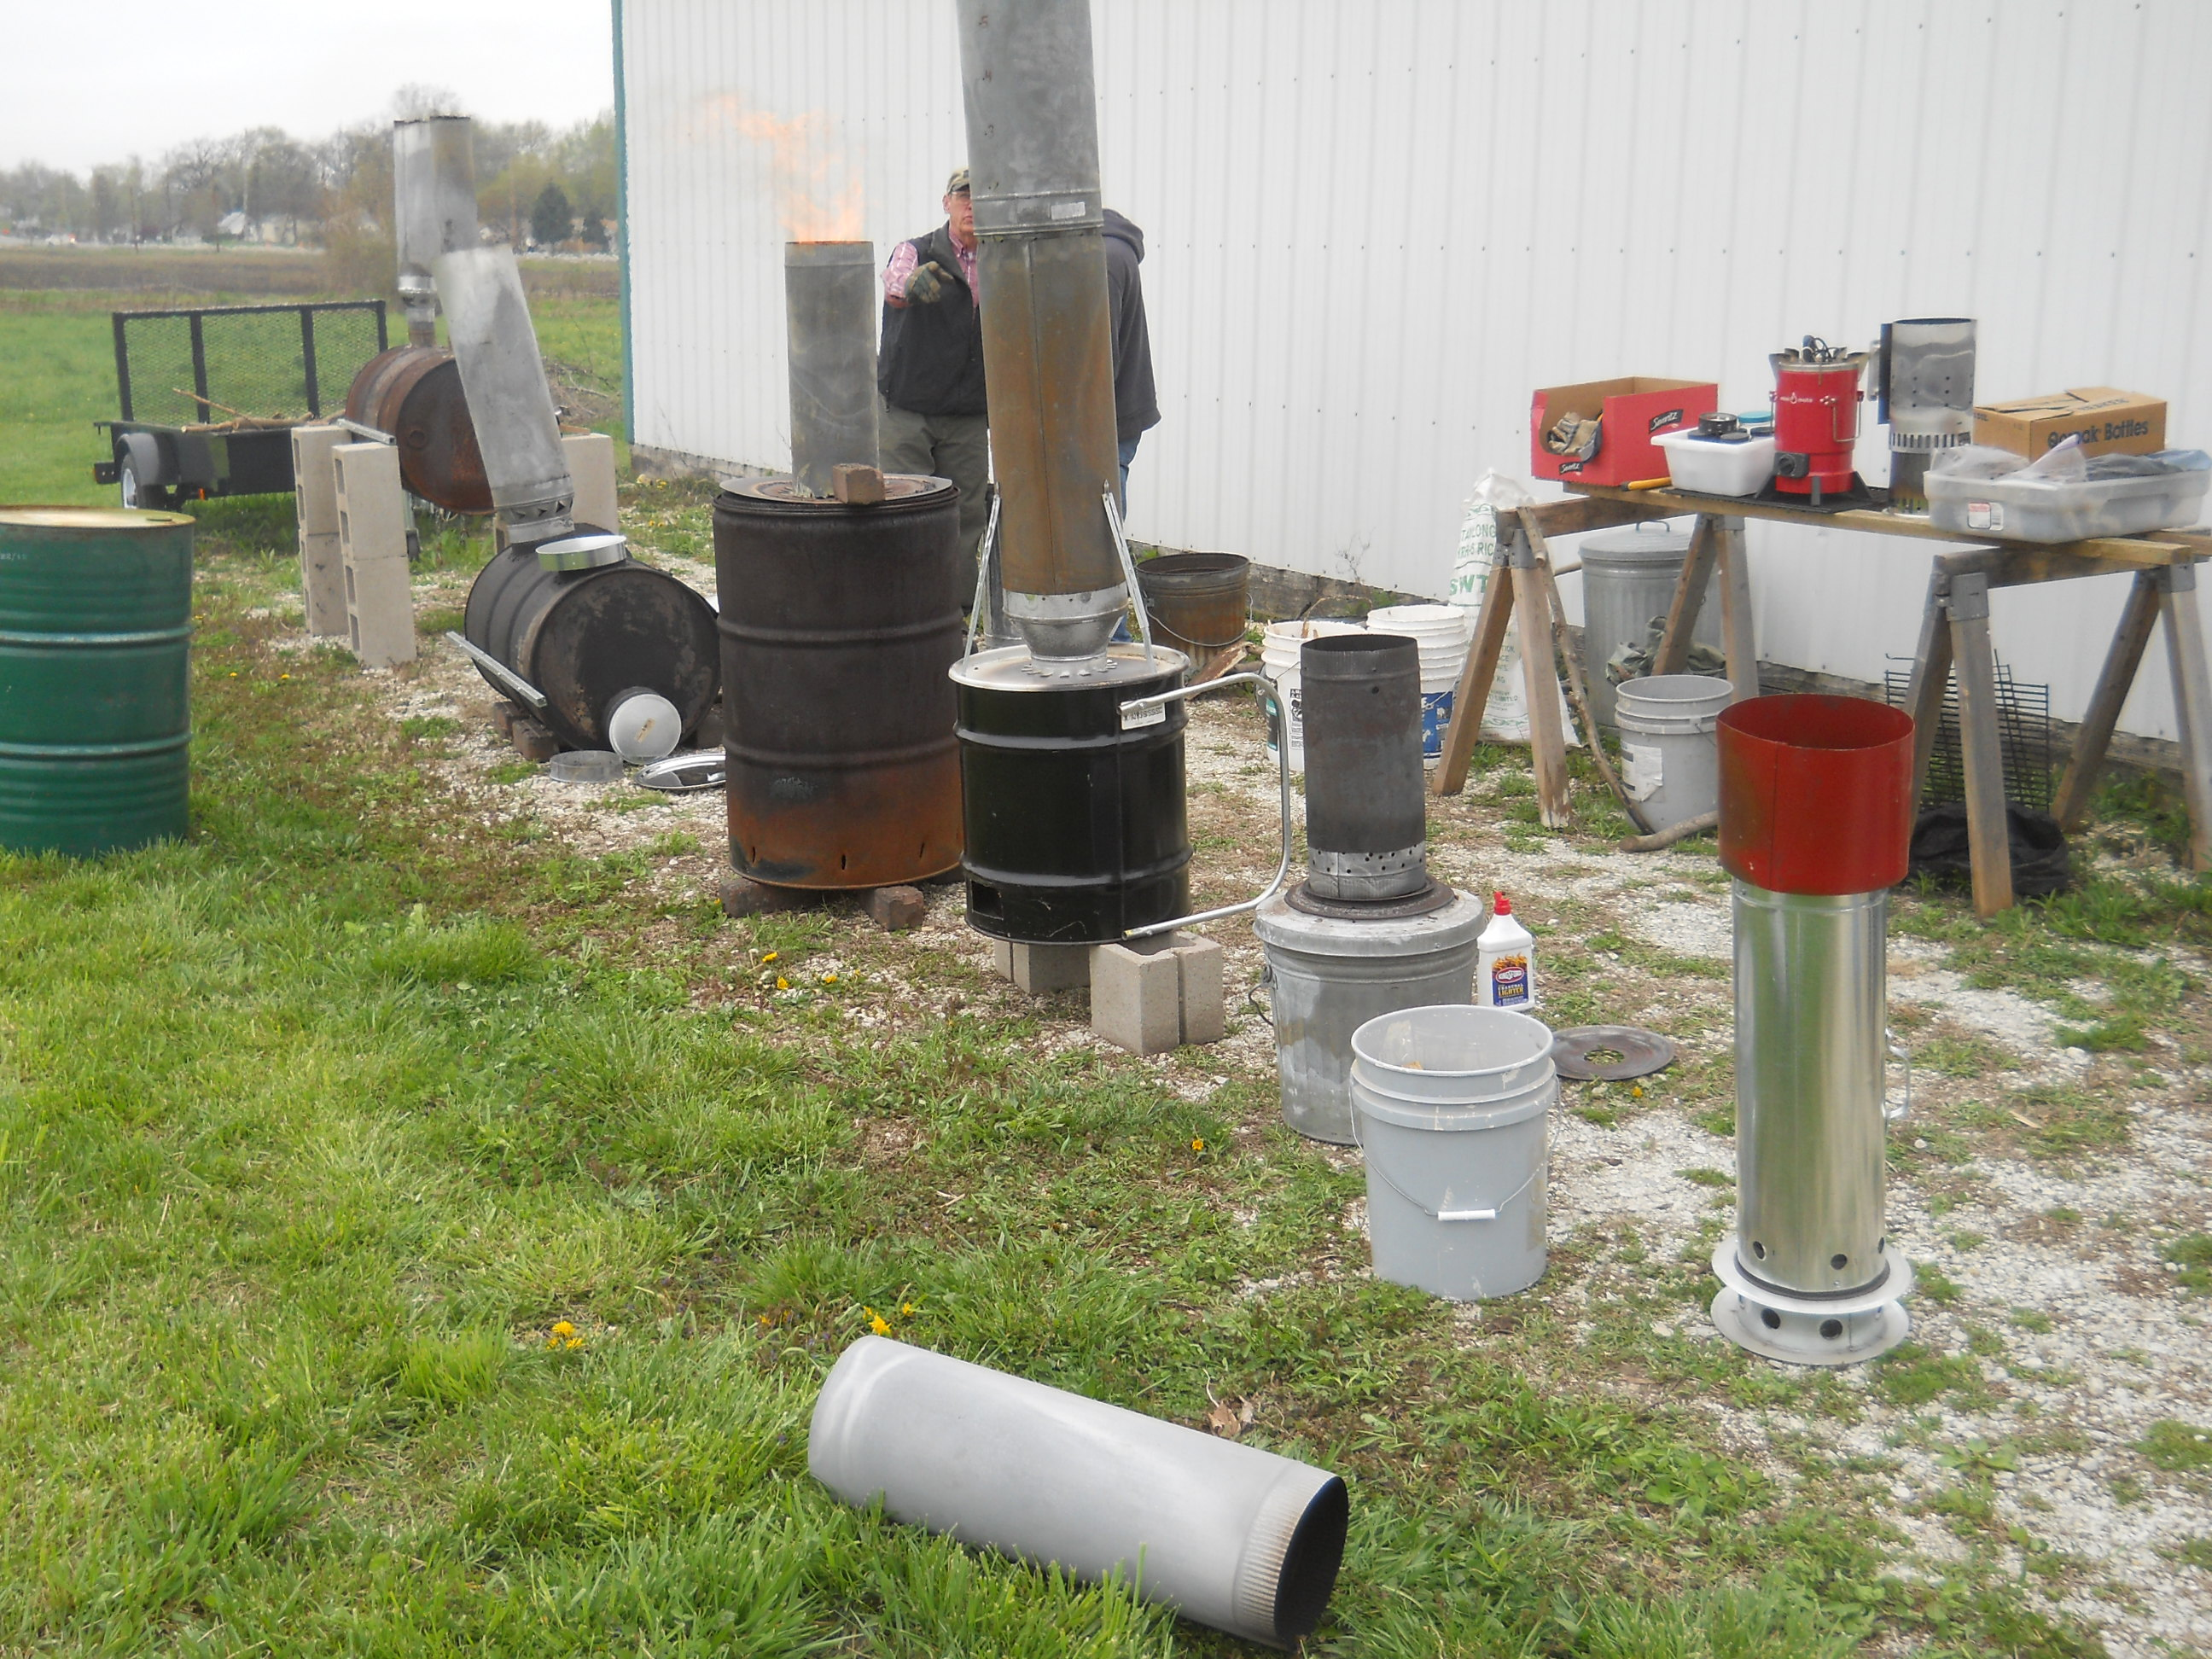 various sizes of cookstoves and char-makers lined up outside with several lit for demonstrations